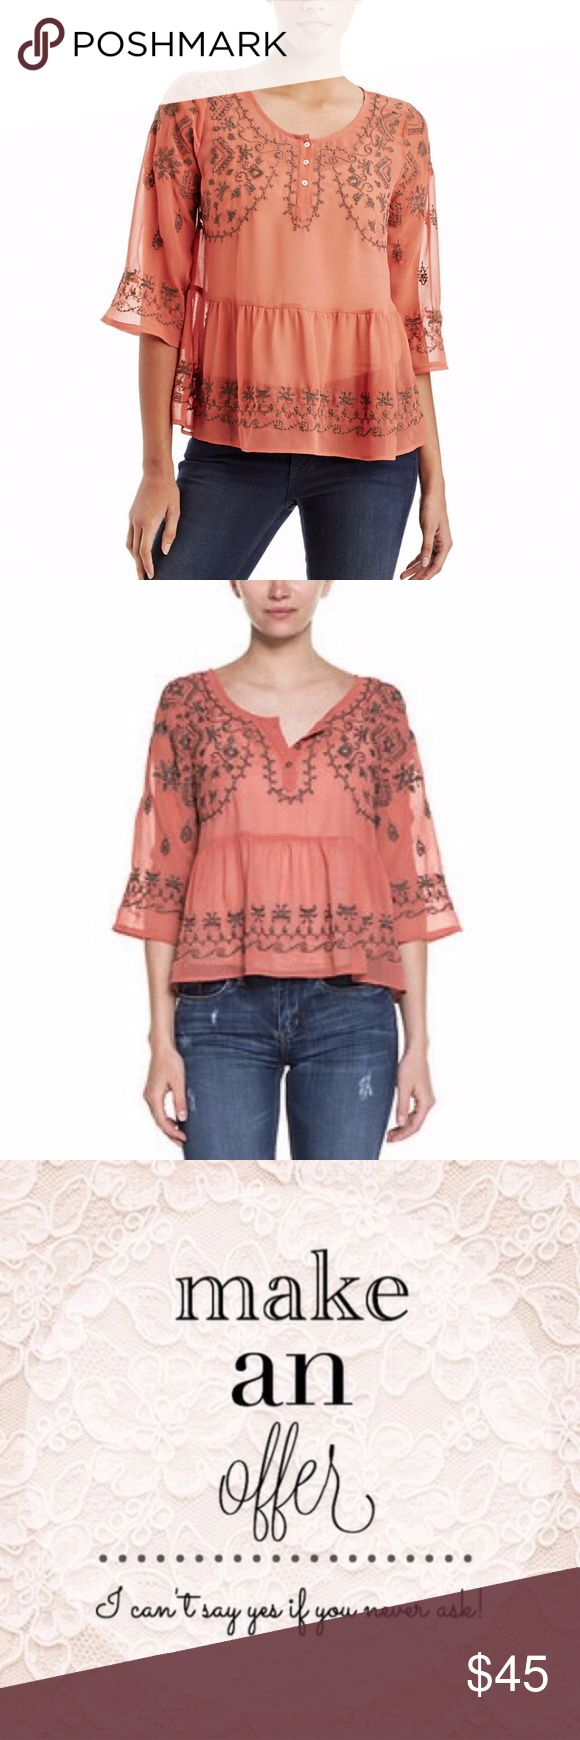 """Free People Rust Embroidered Pennies Sequel Top Free People Rust Embroidered Pennies Sequel Top Sz M Bask in breezy bohemian style with the Free People Pennies top--eclectic embroidery and an airy silhouette are rustic musts Round neck with partial button placket, three quarter sleeves, pleated, sheer Poly / Machine wash Size M ~ Womens Condition: Excellent APPROXIMATE MEASUREMENTS  Underarm to underarm measures 19 1/2"""" Shoulder seam to hem measures  23"""" Underarm to cuff measures 10"""" Free…"""